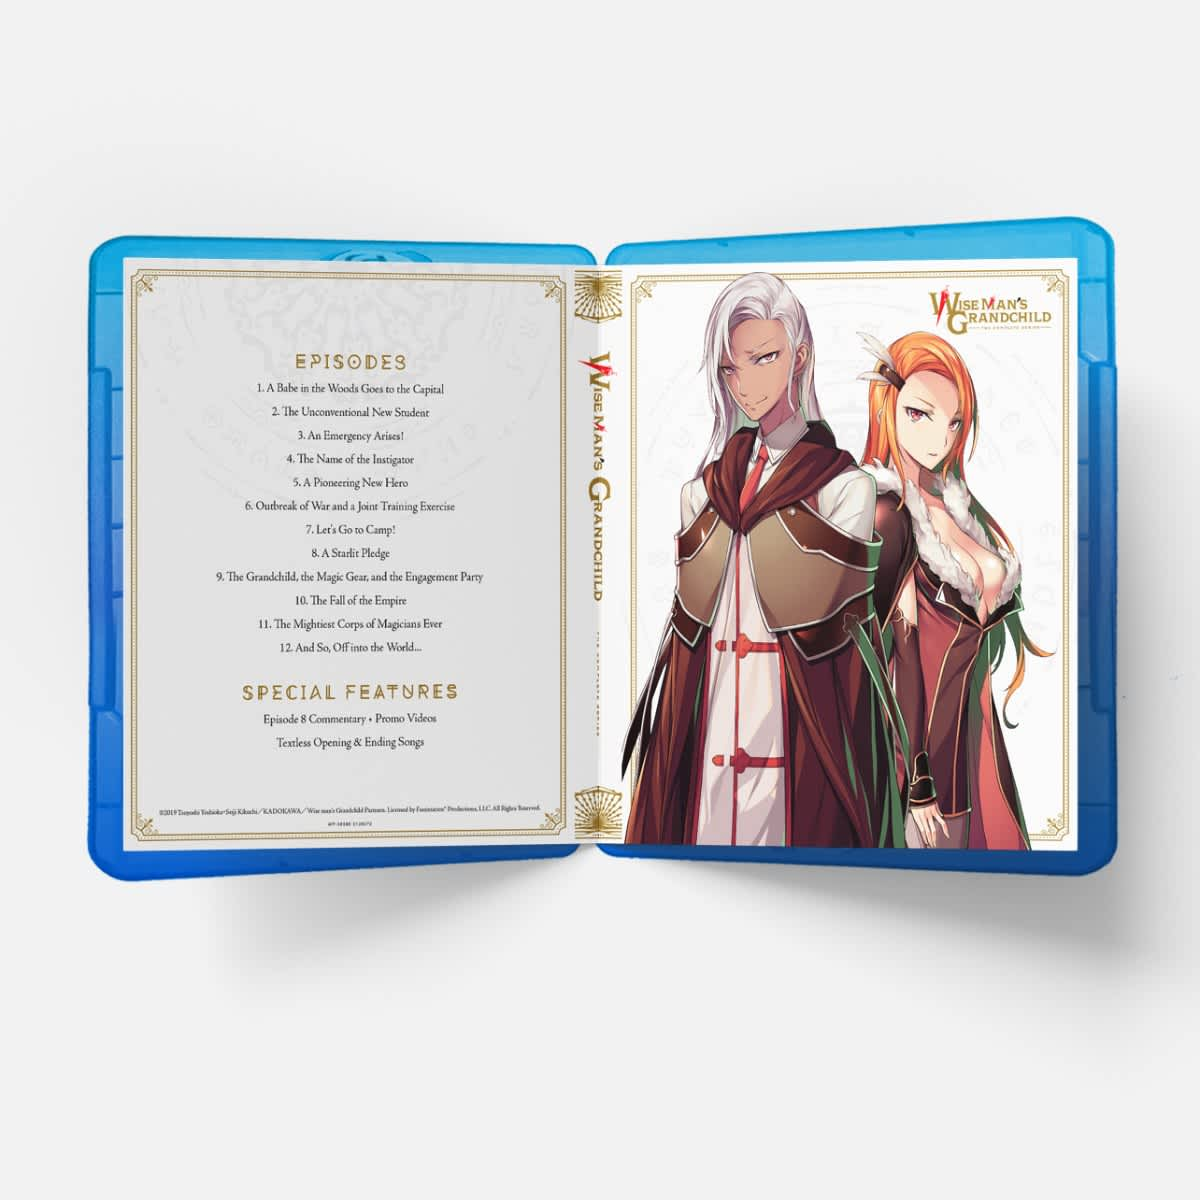 Wise Man's Grandchild Limited Edition Blu-ray/DVD